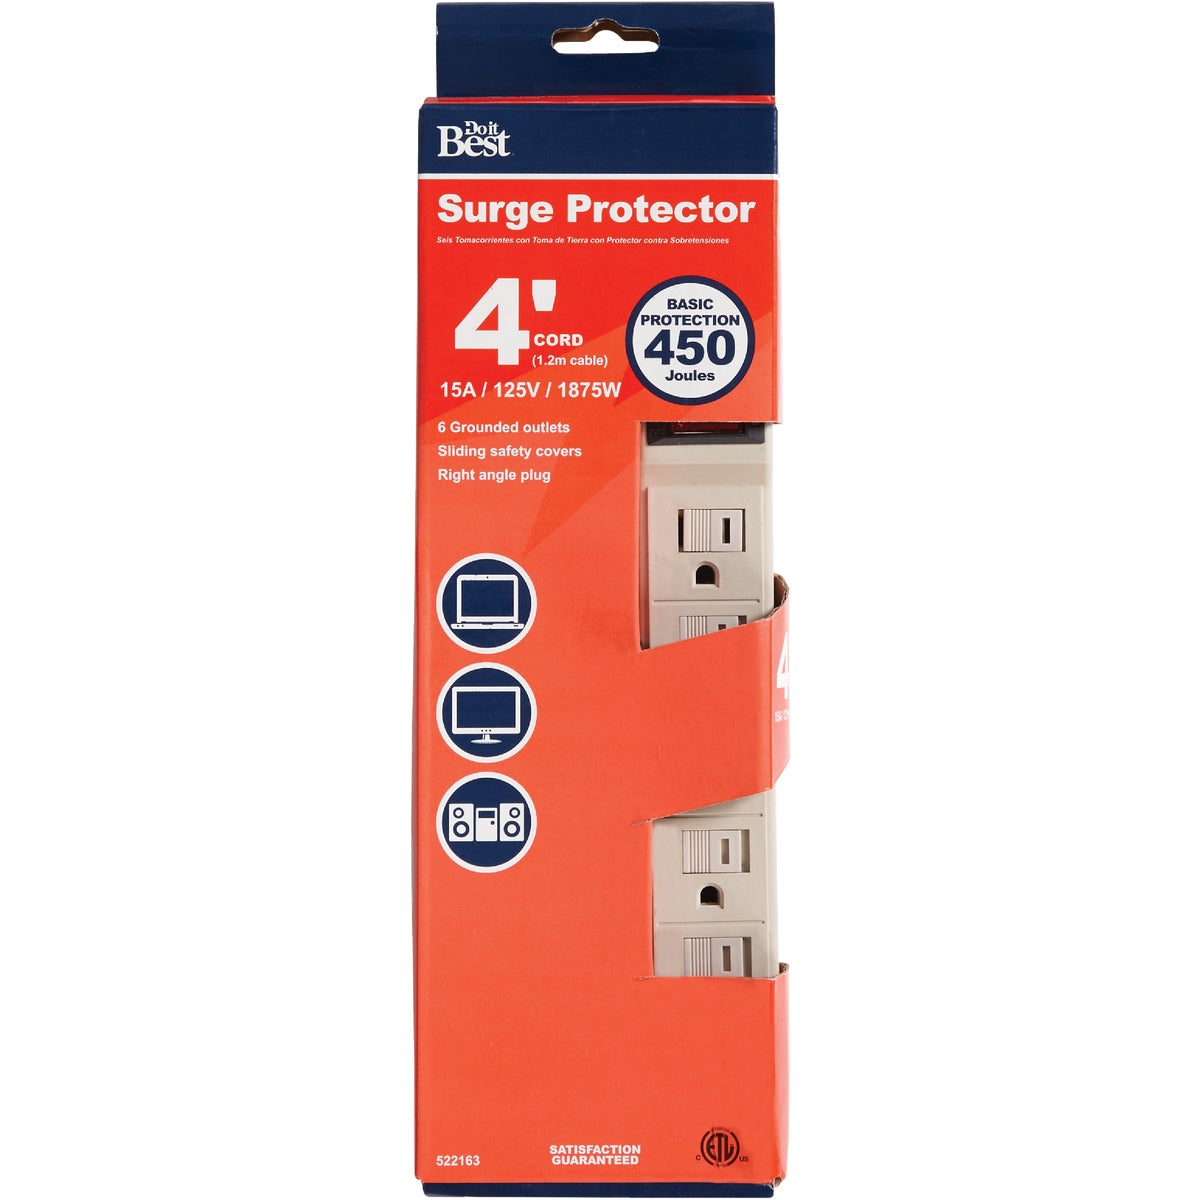 6-OUTLET SURGE STRIP - 522163 by Coleman Cable Import